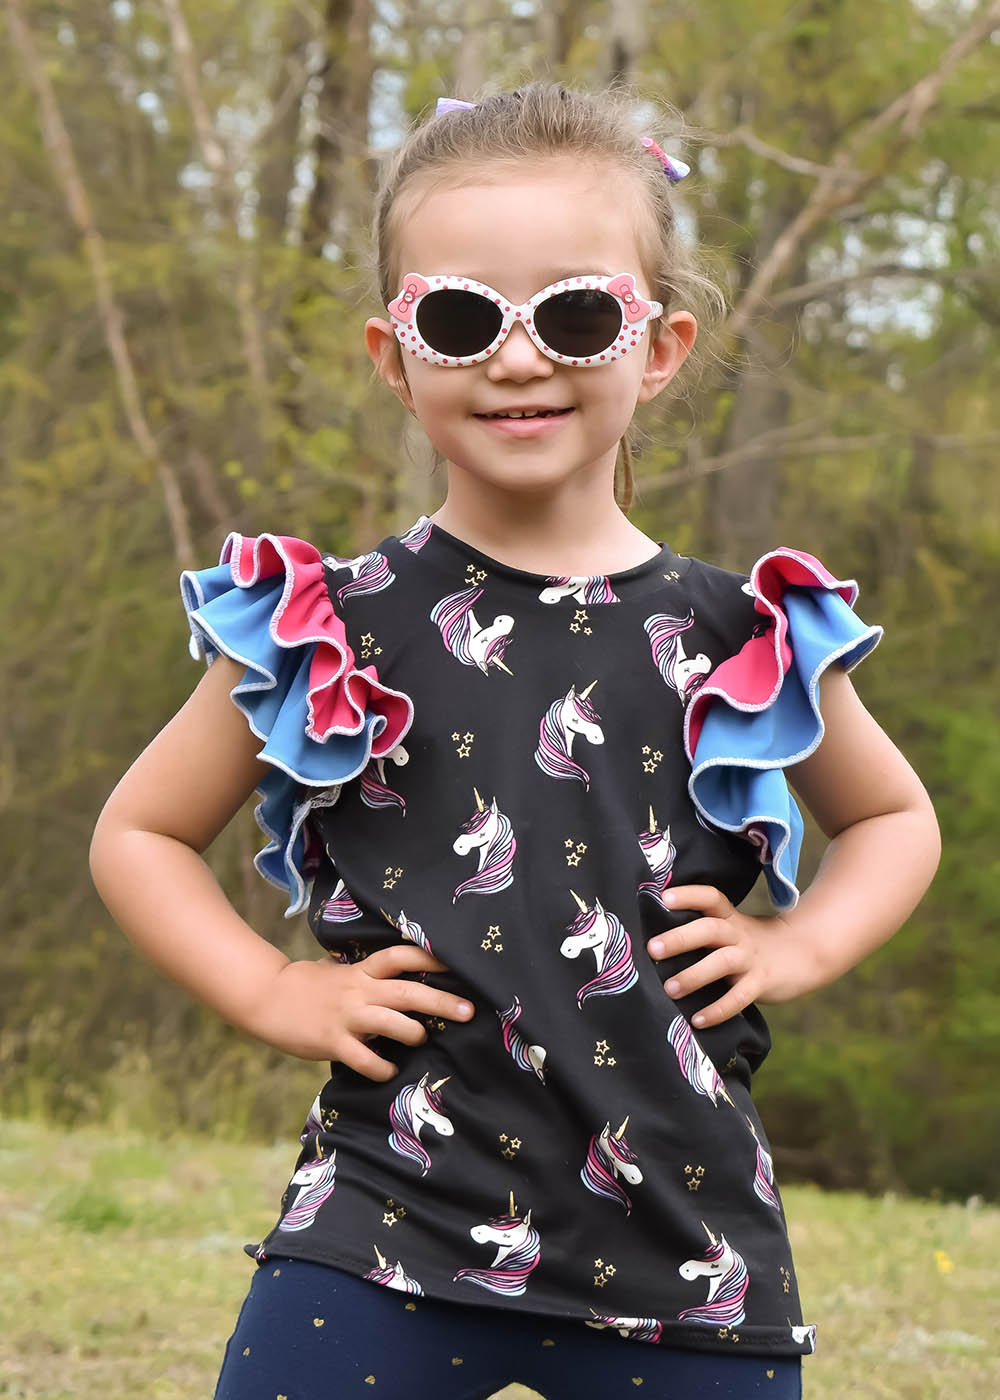 Independence's Icing Sleeveless Top Sizes 2T to 14 Kids PDF Pattern